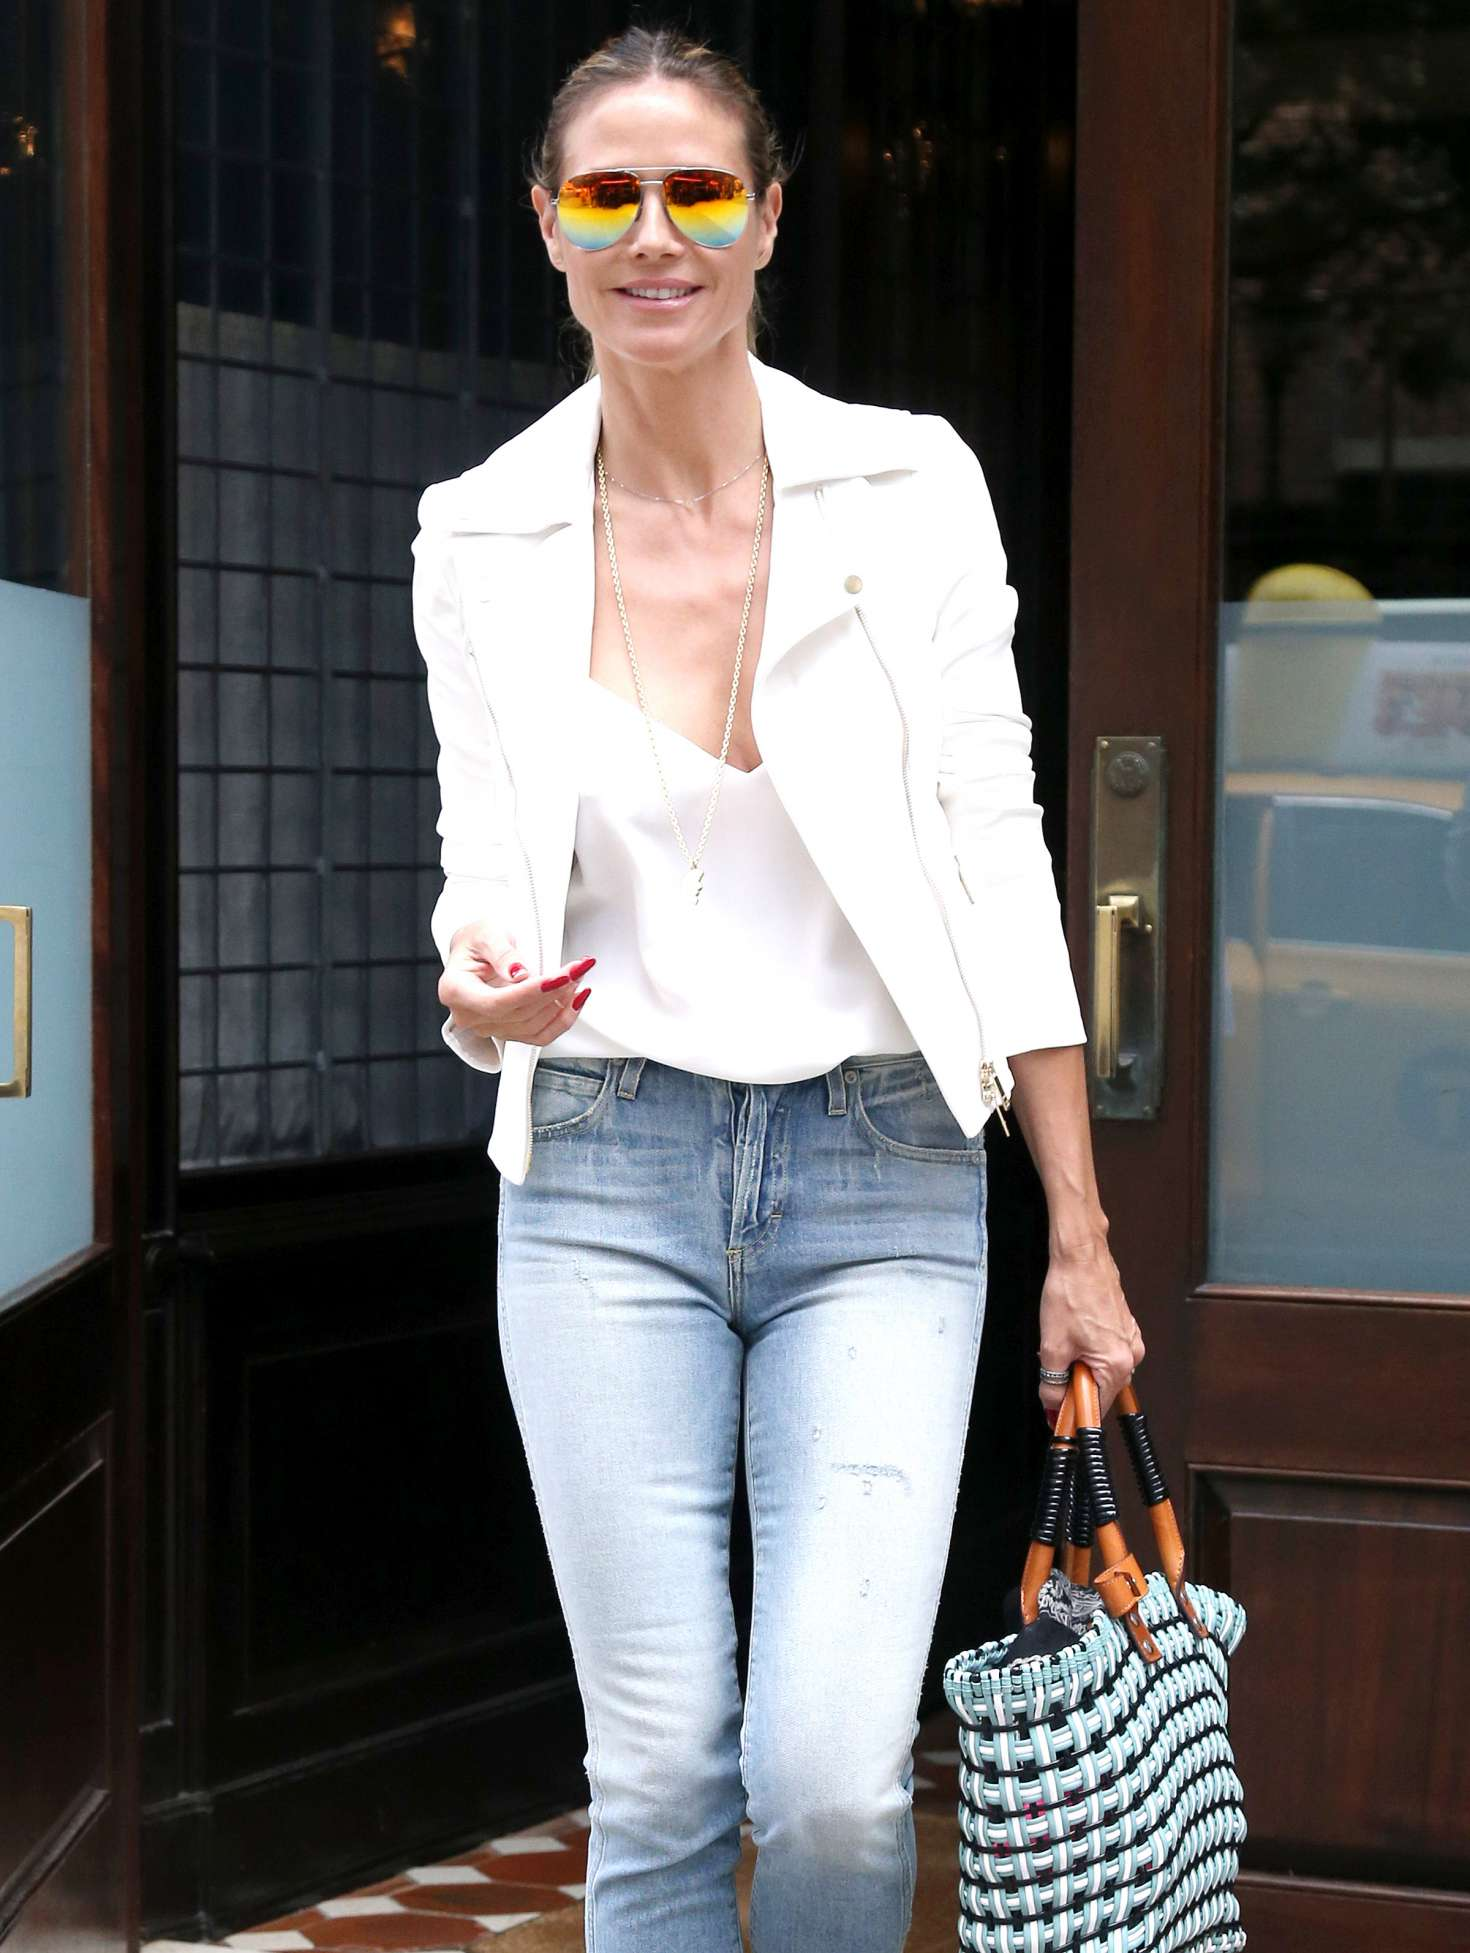 Heidi Klum 2017 : Heidi Klum Out and about in NY -15